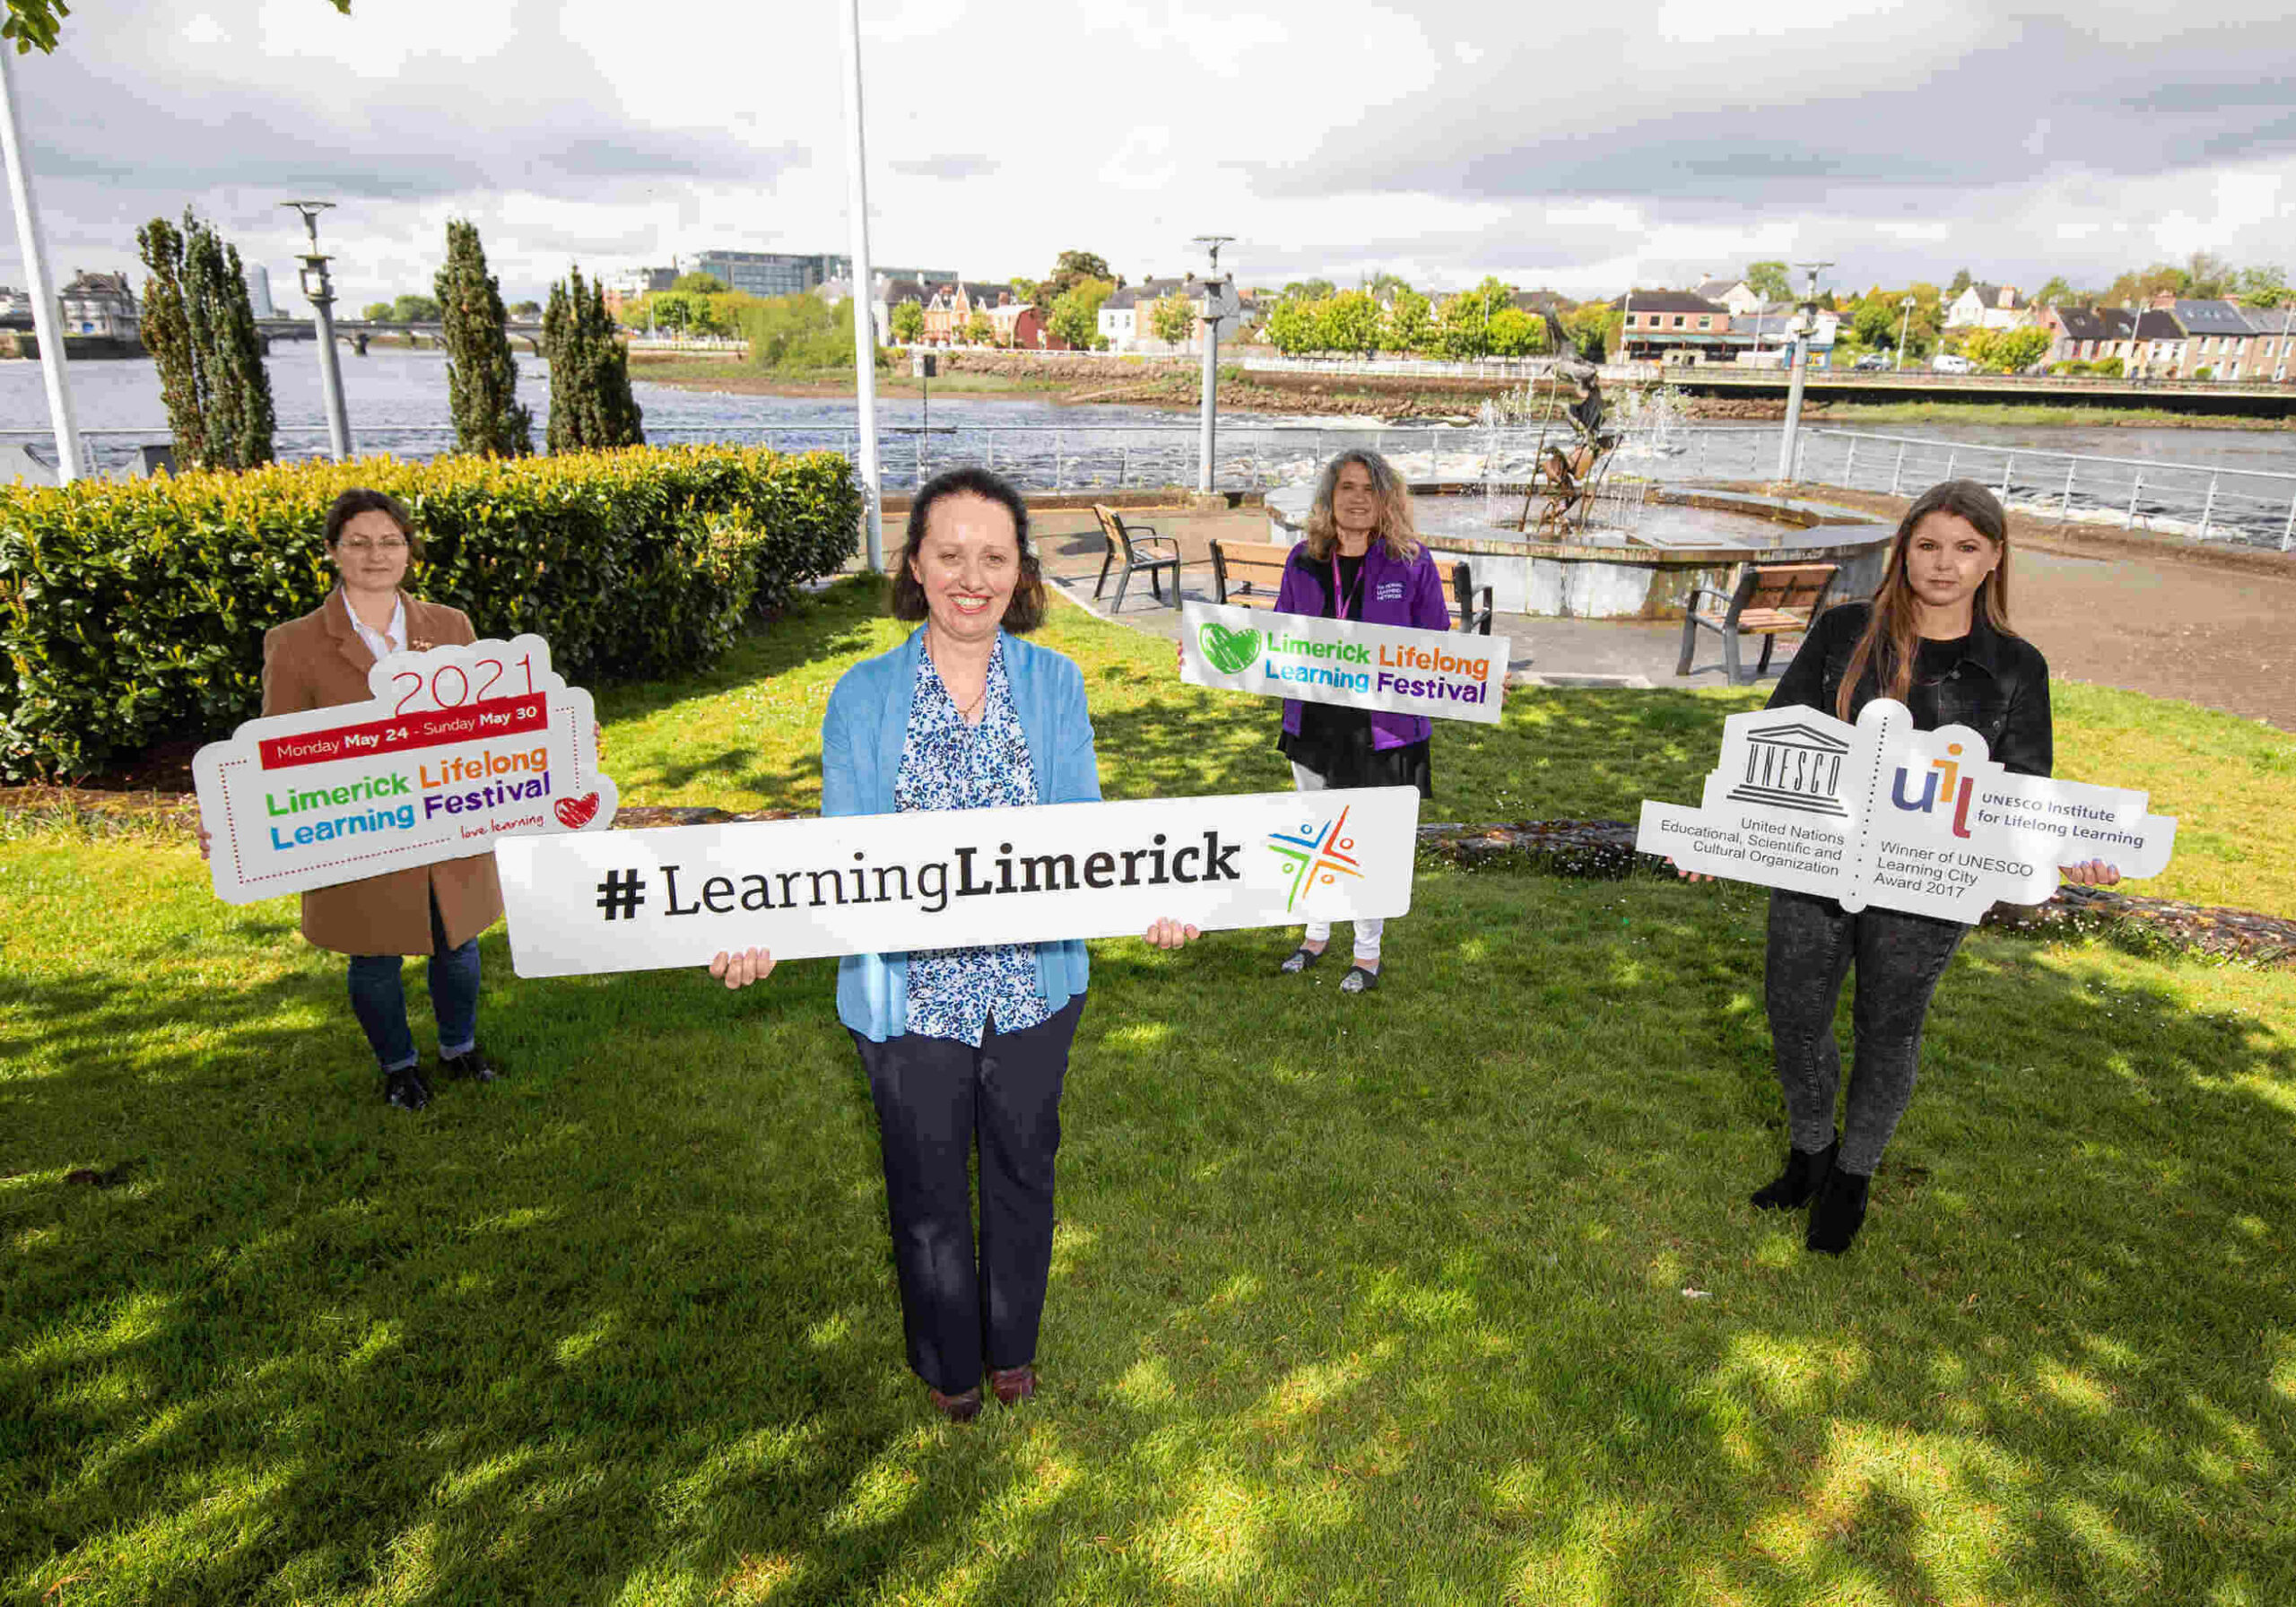 Lifelong Learning Festival 2021 - Pictured launching this year's festival were, Adrienne O'Connell, West Limerick Resources, Yvonne Lane, Learning Limerick, Margaret Murphy, National Learning Network and Mariola Jurewicz-Jurgas, PAUL Partnership. Picture: Alan Place.